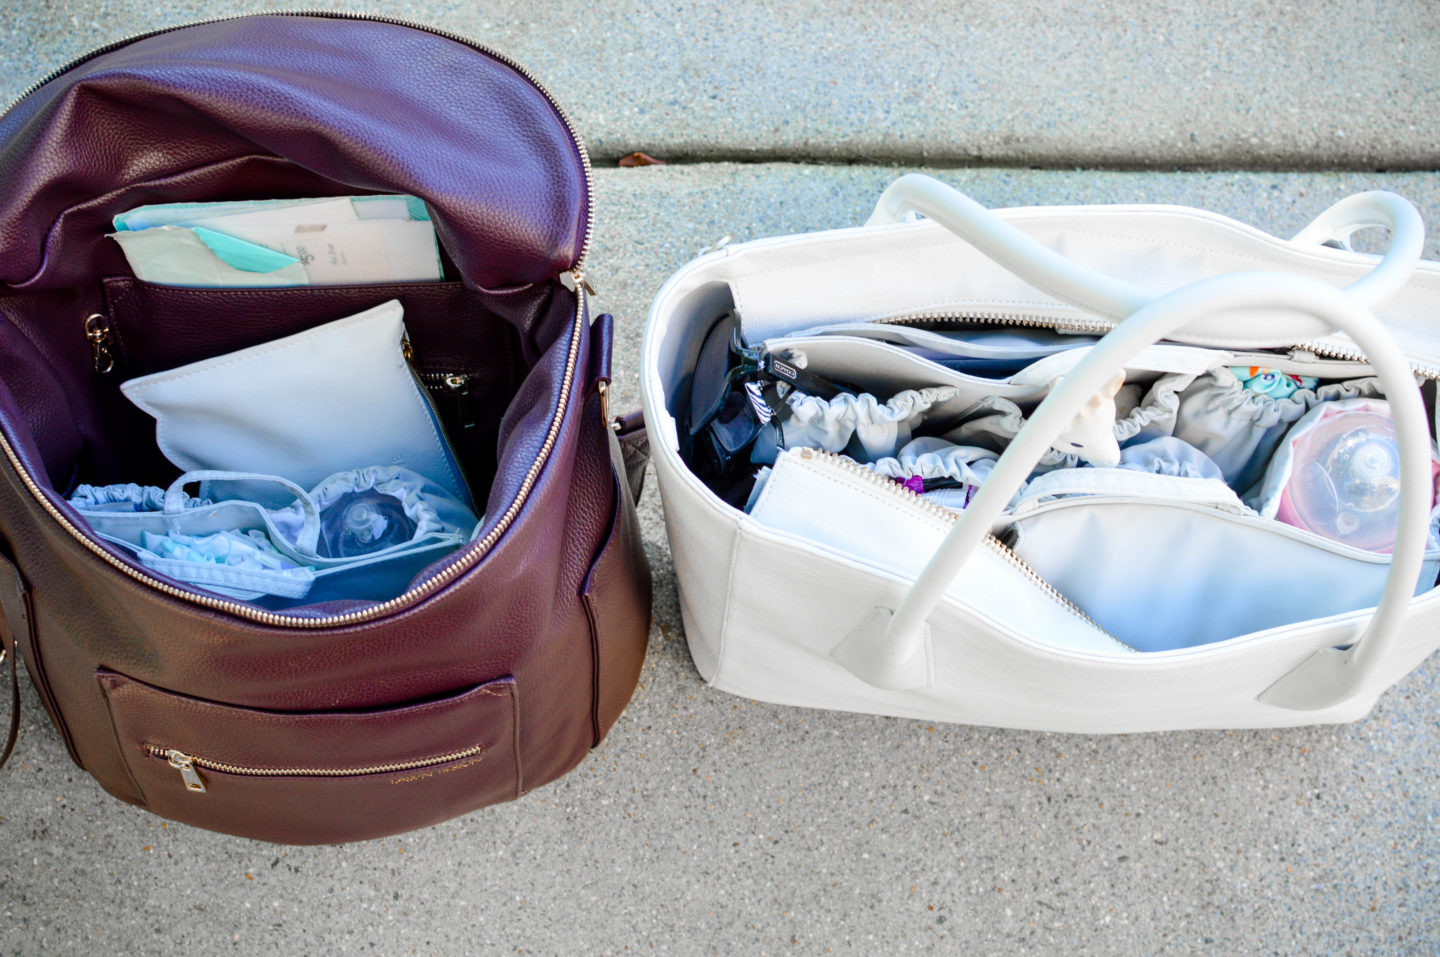 Making Any Purse A Diaper Bag With Tote Savvy Breezing